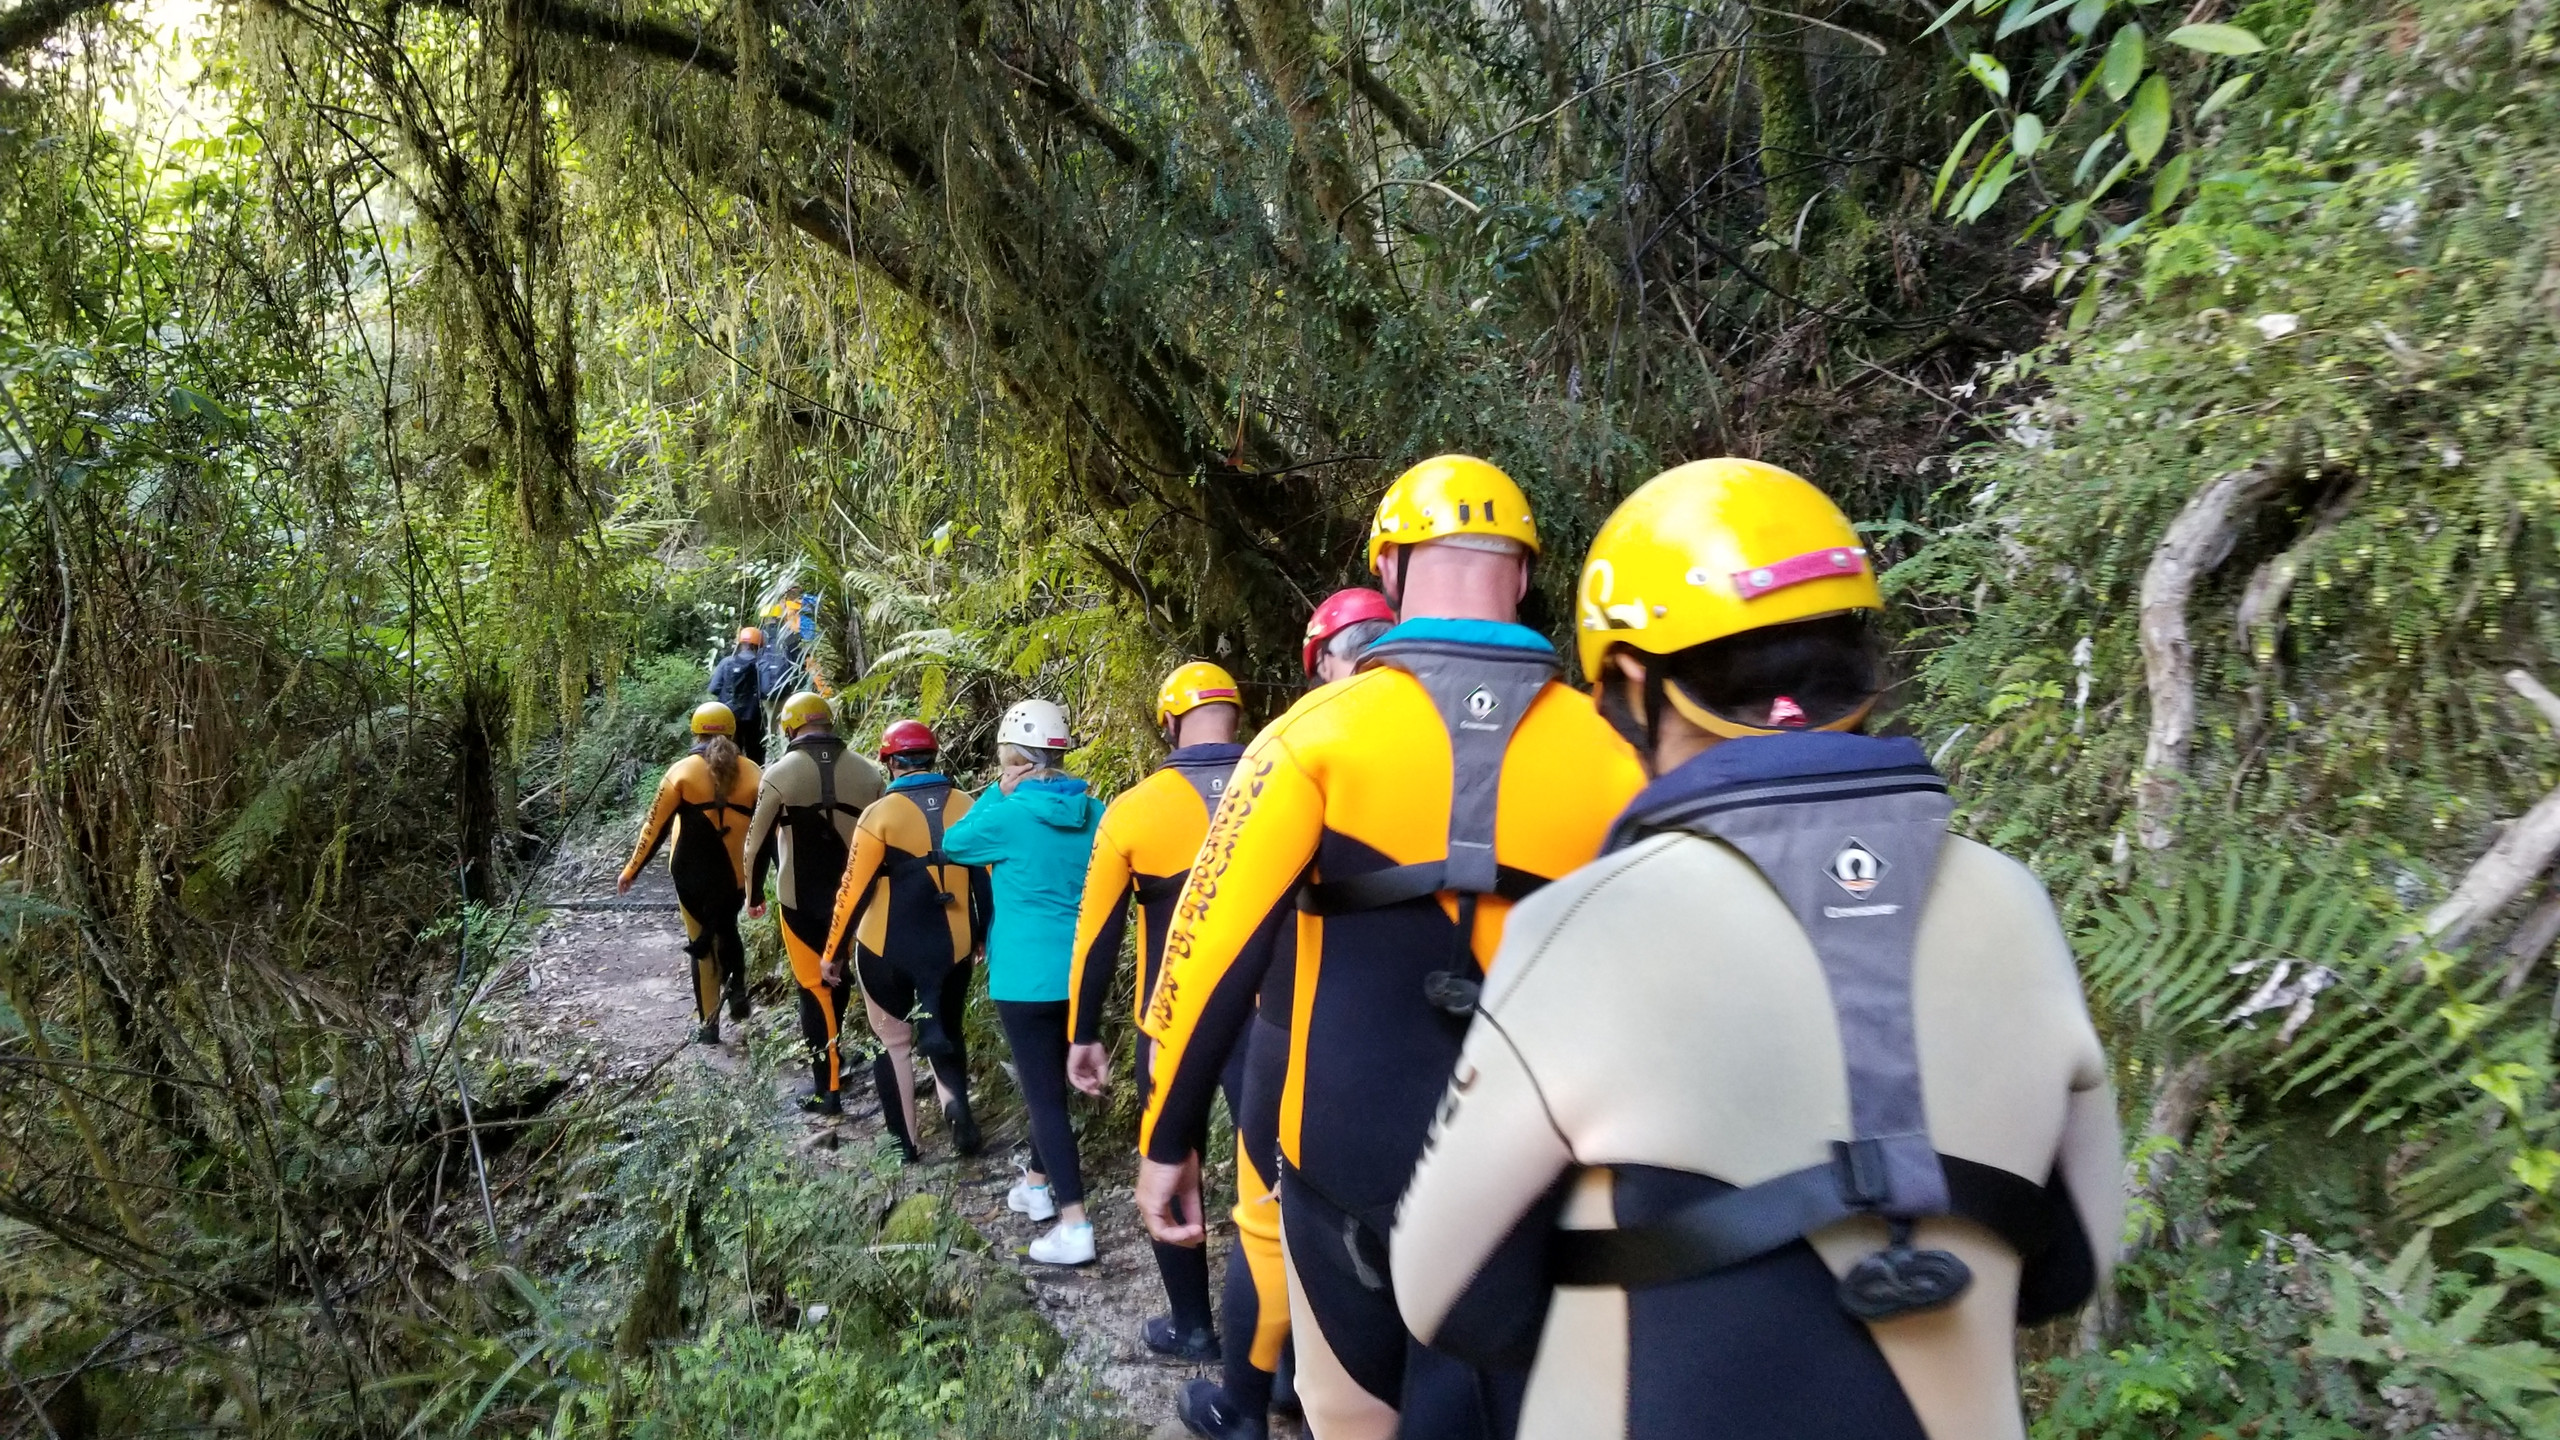 Cave tour near Greymouth, New Zealand activities, New Zealand attractions